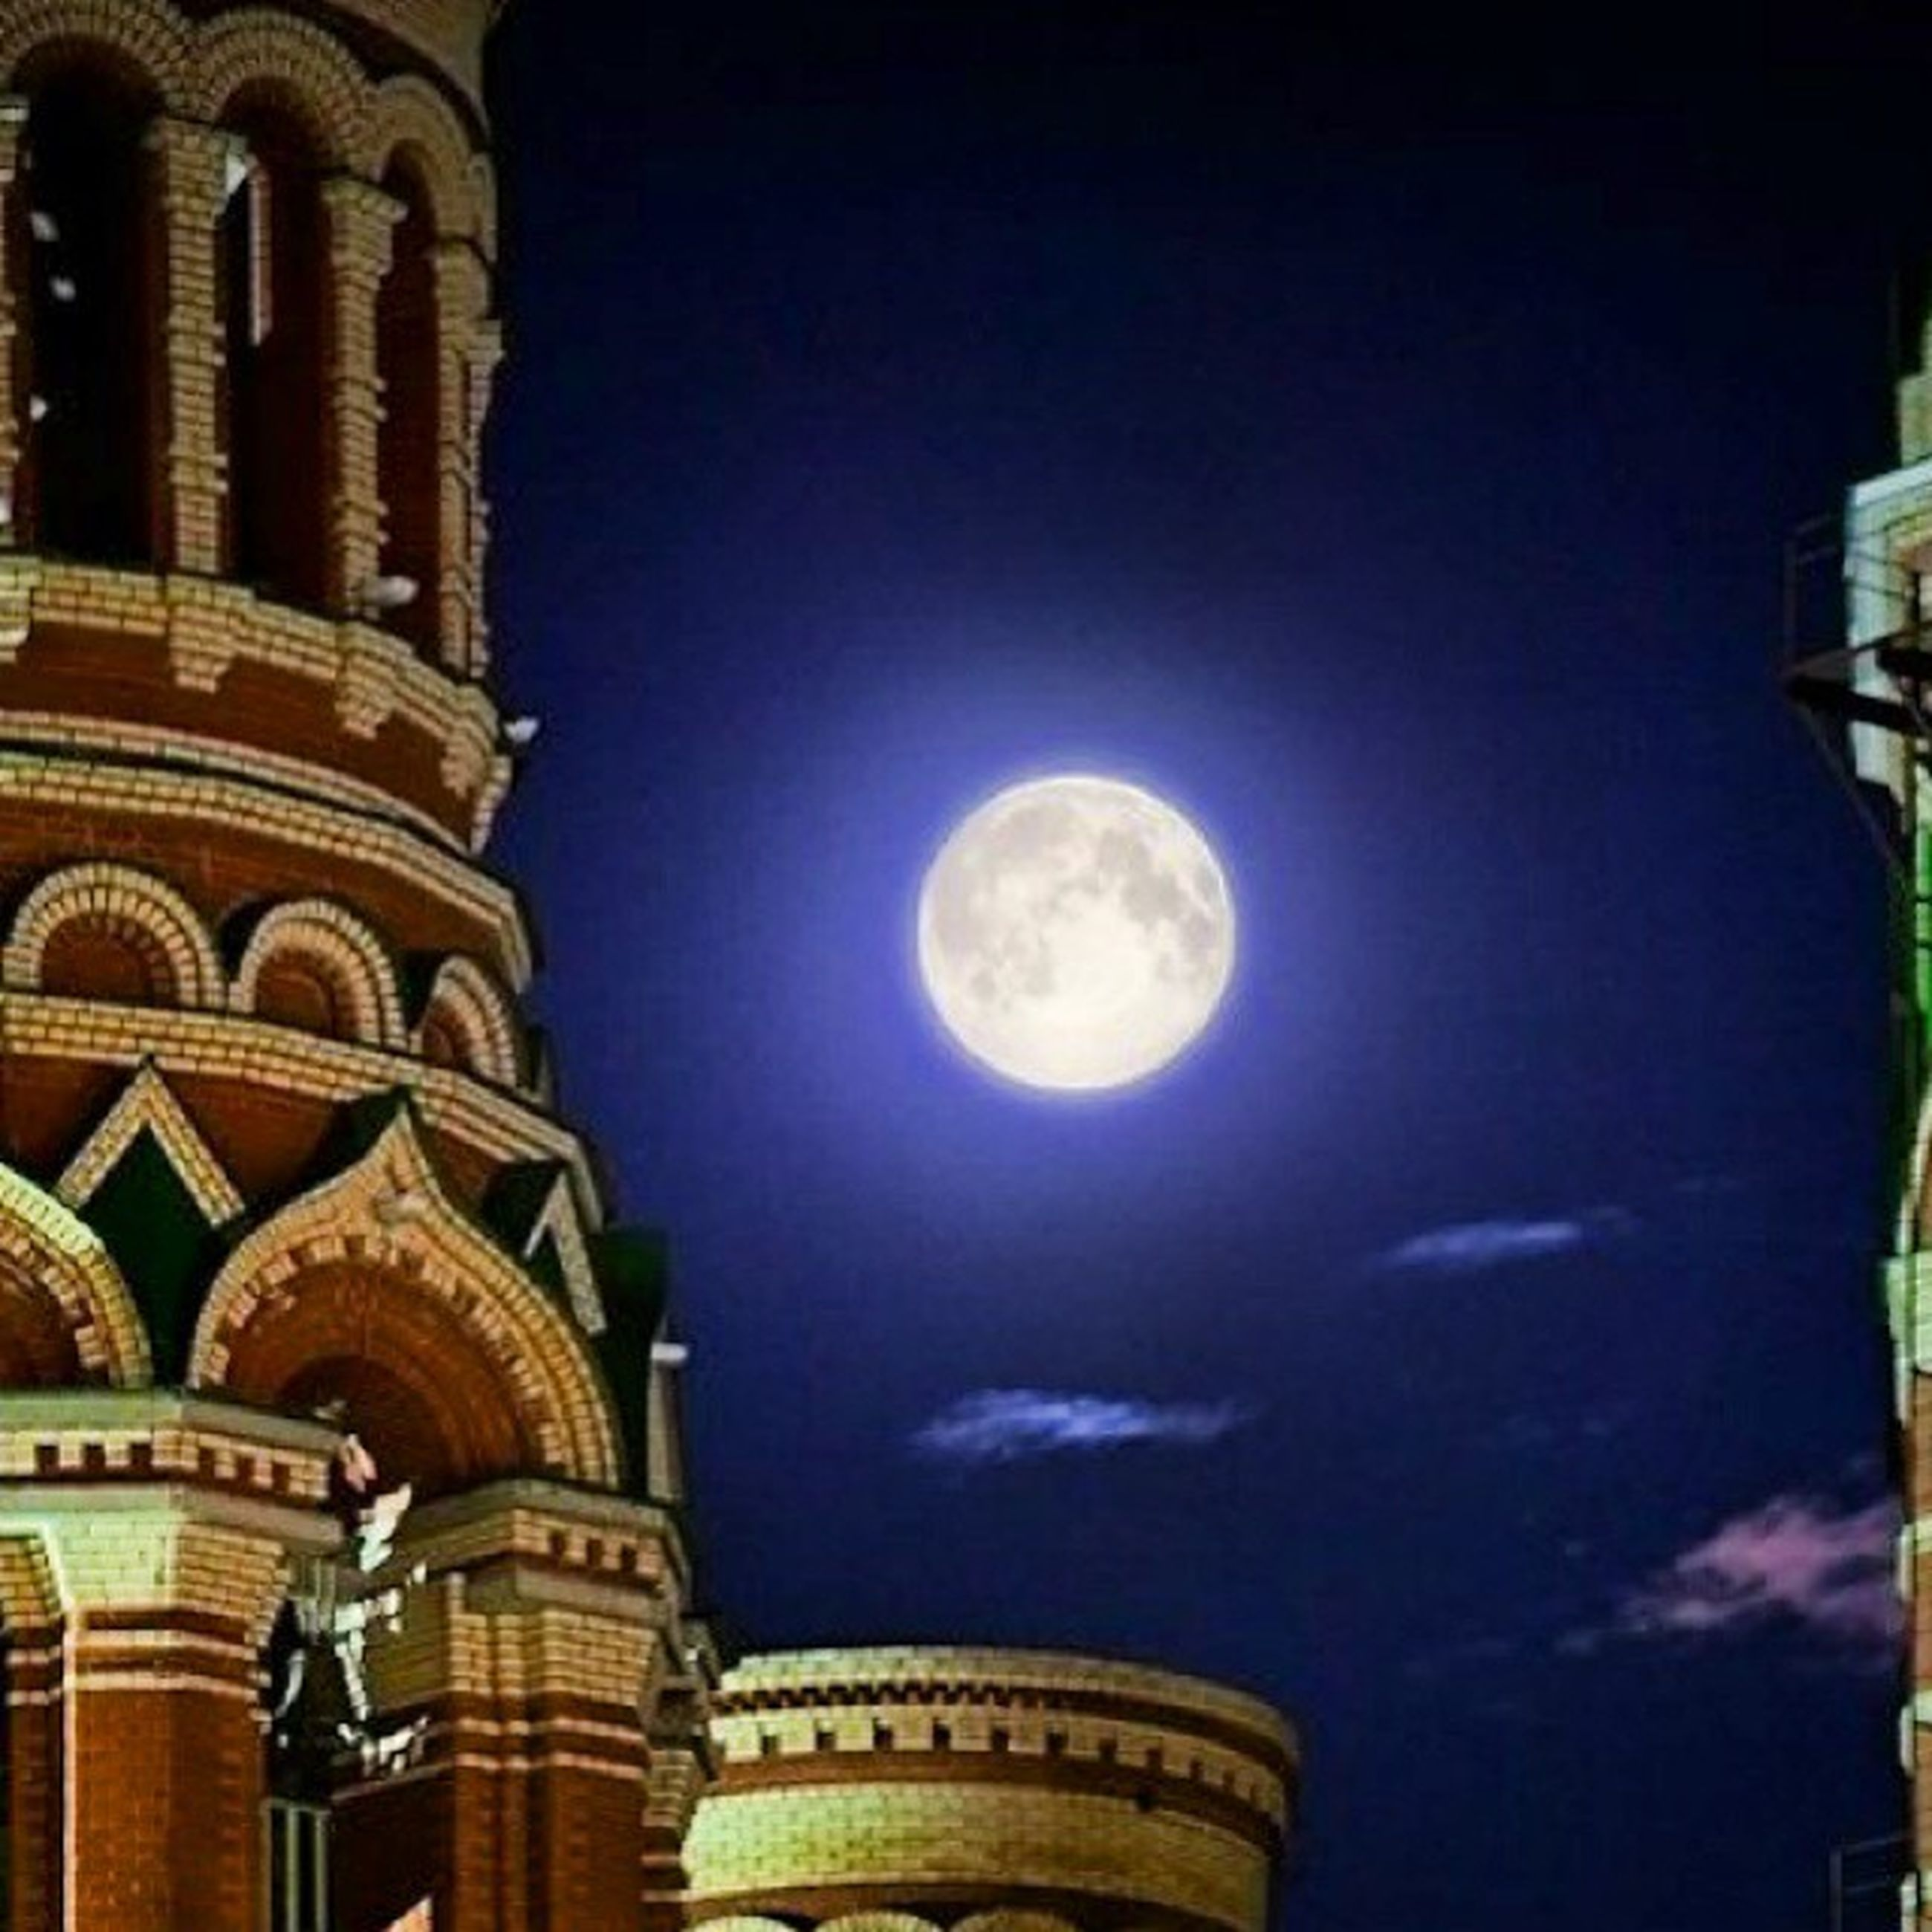 architecture, built structure, building exterior, low angle view, sky, moon, arch, night, building, history, illuminated, city, outdoors, no people, high section, blue, cloud - sky, dome, circle, full moon